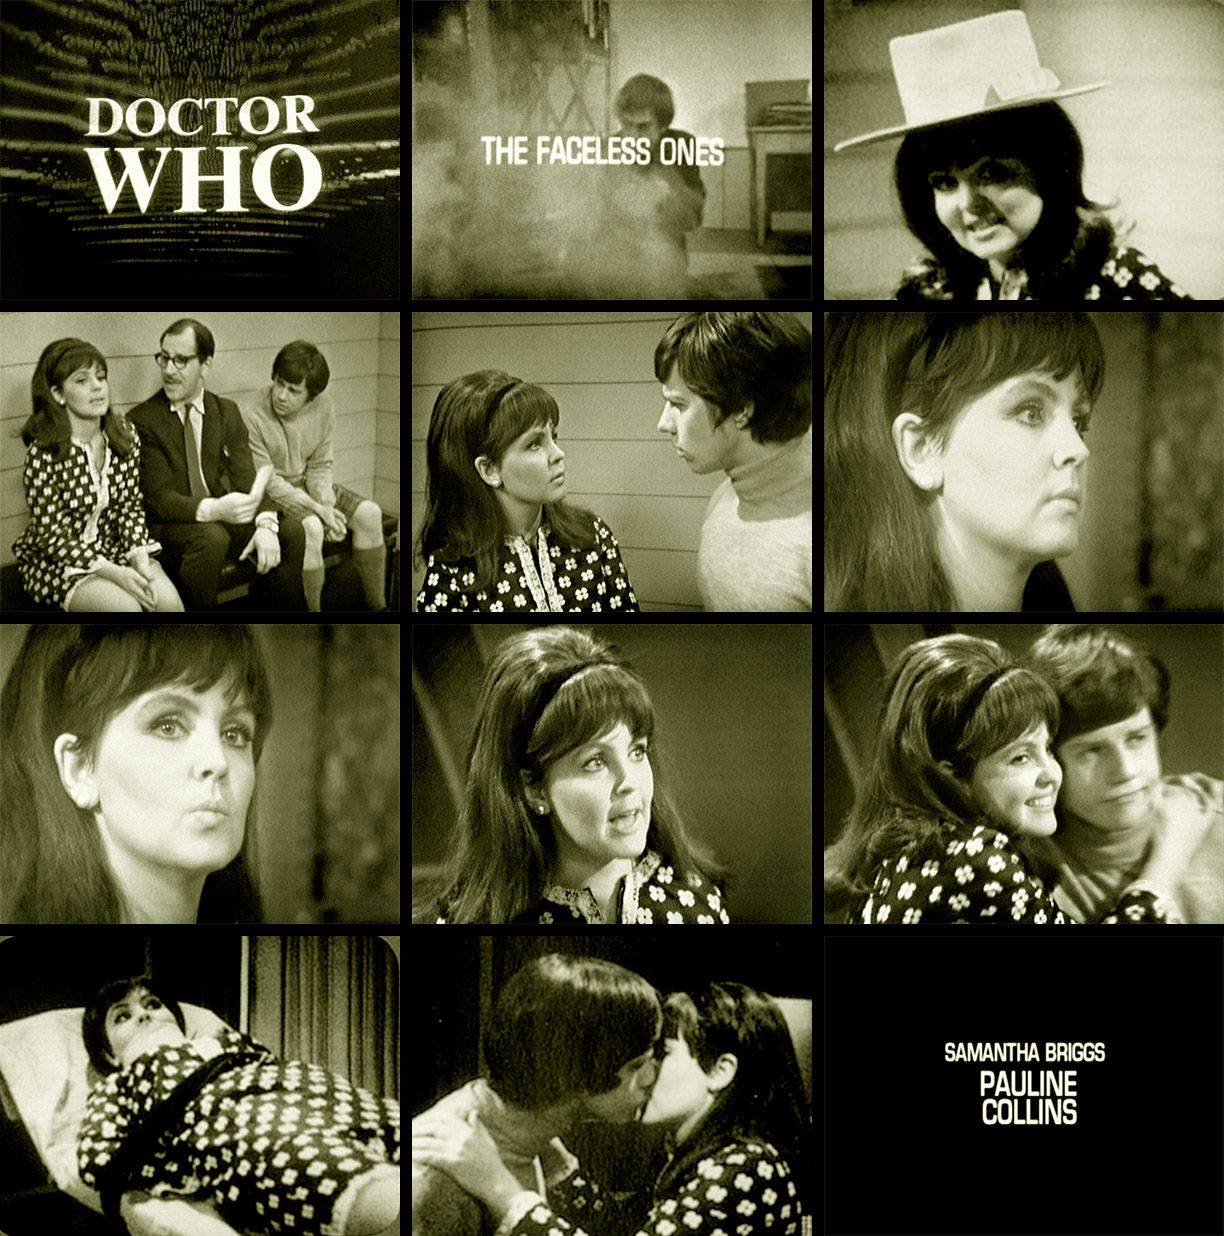 In 1967 Pauline Collins Played Samantha Briggs In The Doctor Who